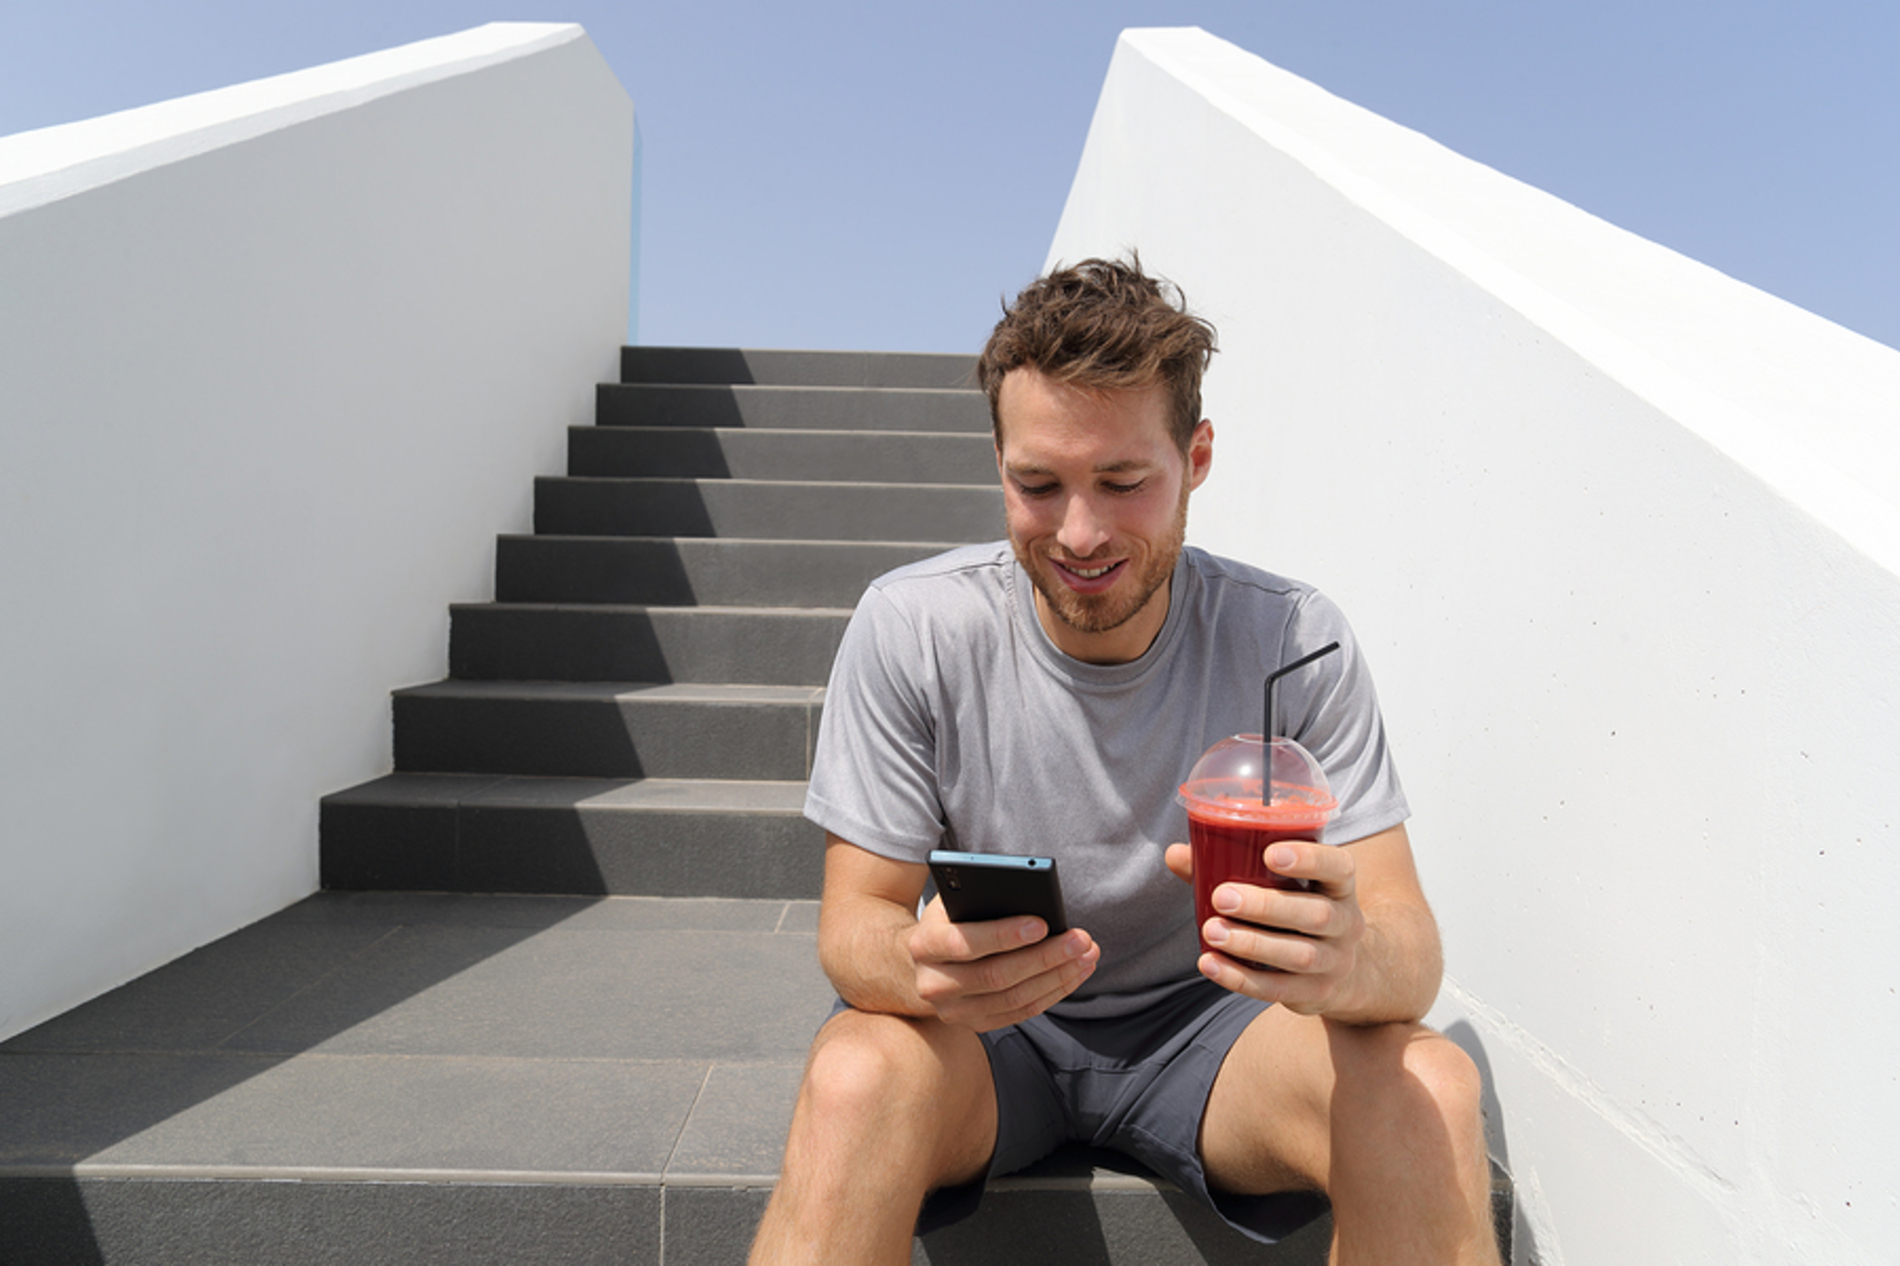 Man sitting on steps with his phone and a drink.